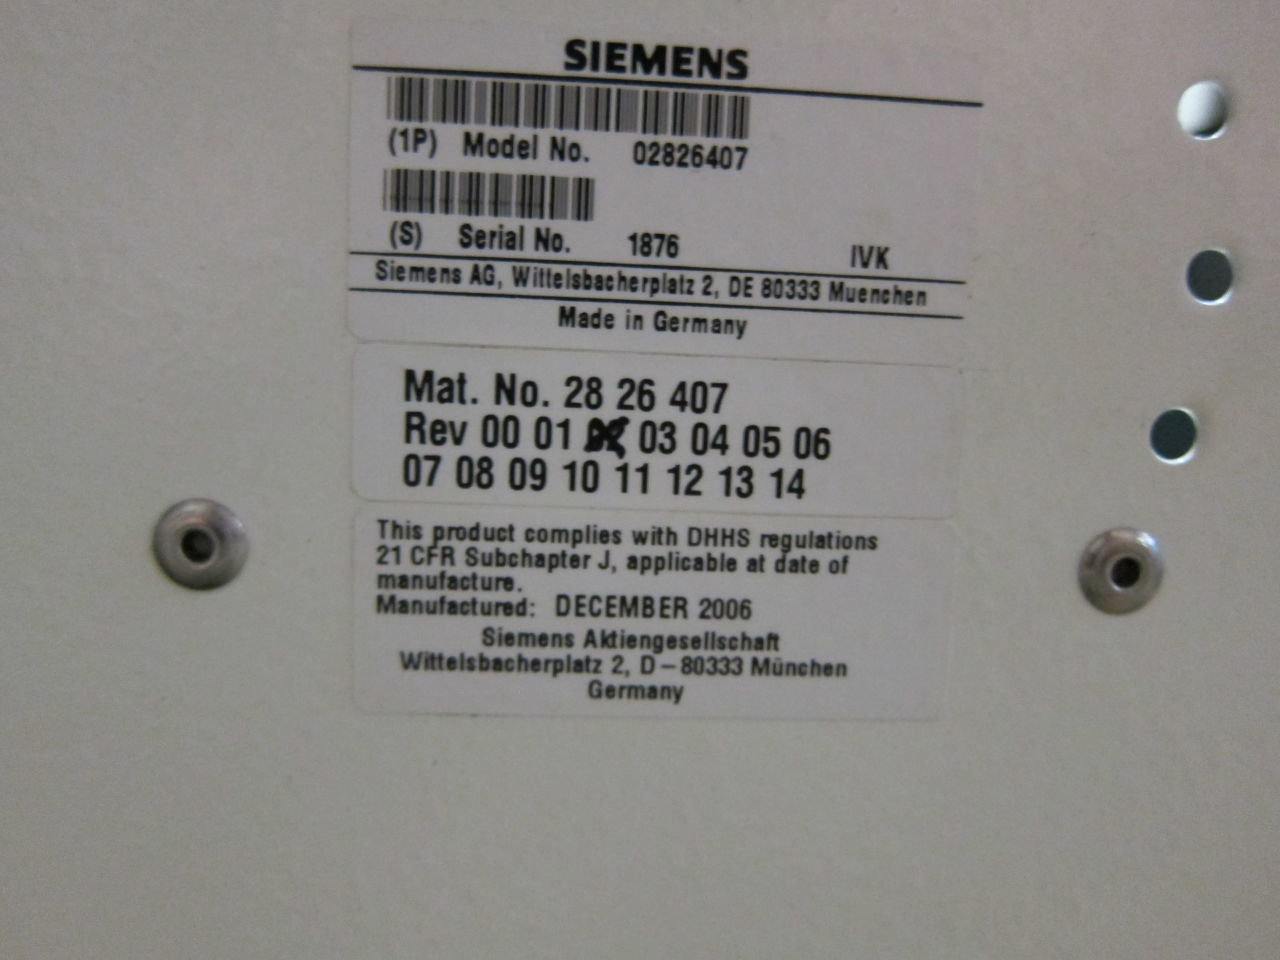 SIEMENS Axiom Sireskop SD S3,  Polydoros SX65  Digital Pediatric Rad/Fluoro Room